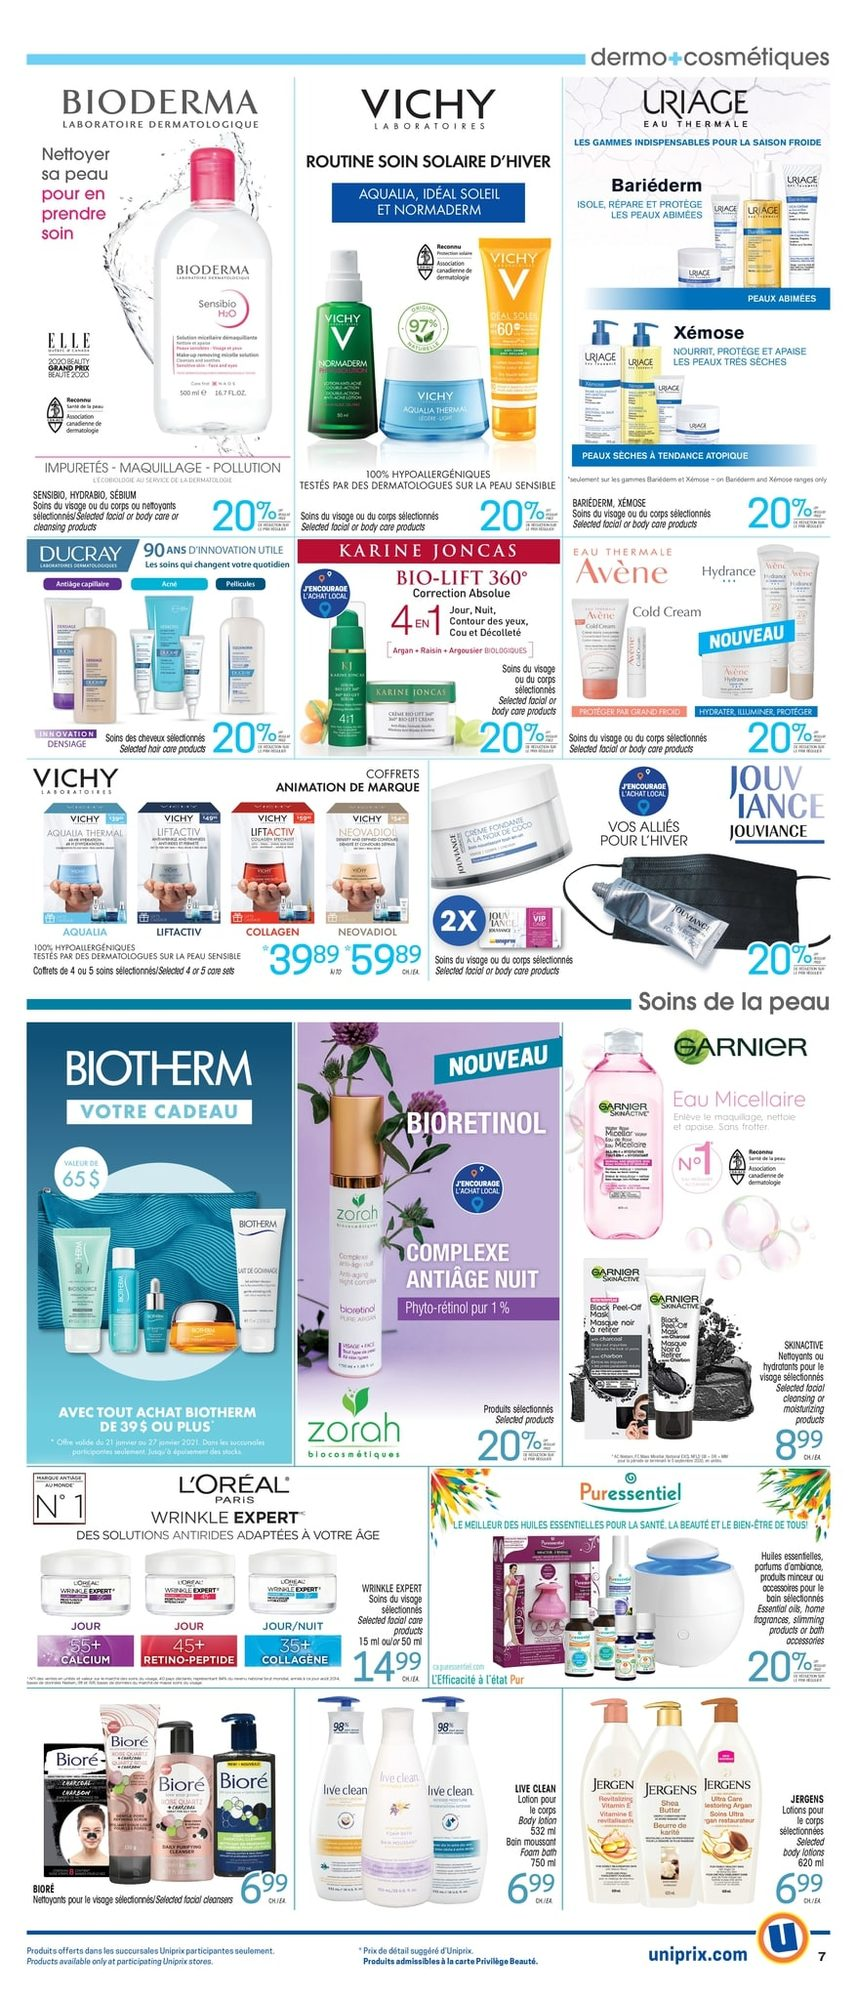 Uniprix - Weekly Flyer Specials - Page 9